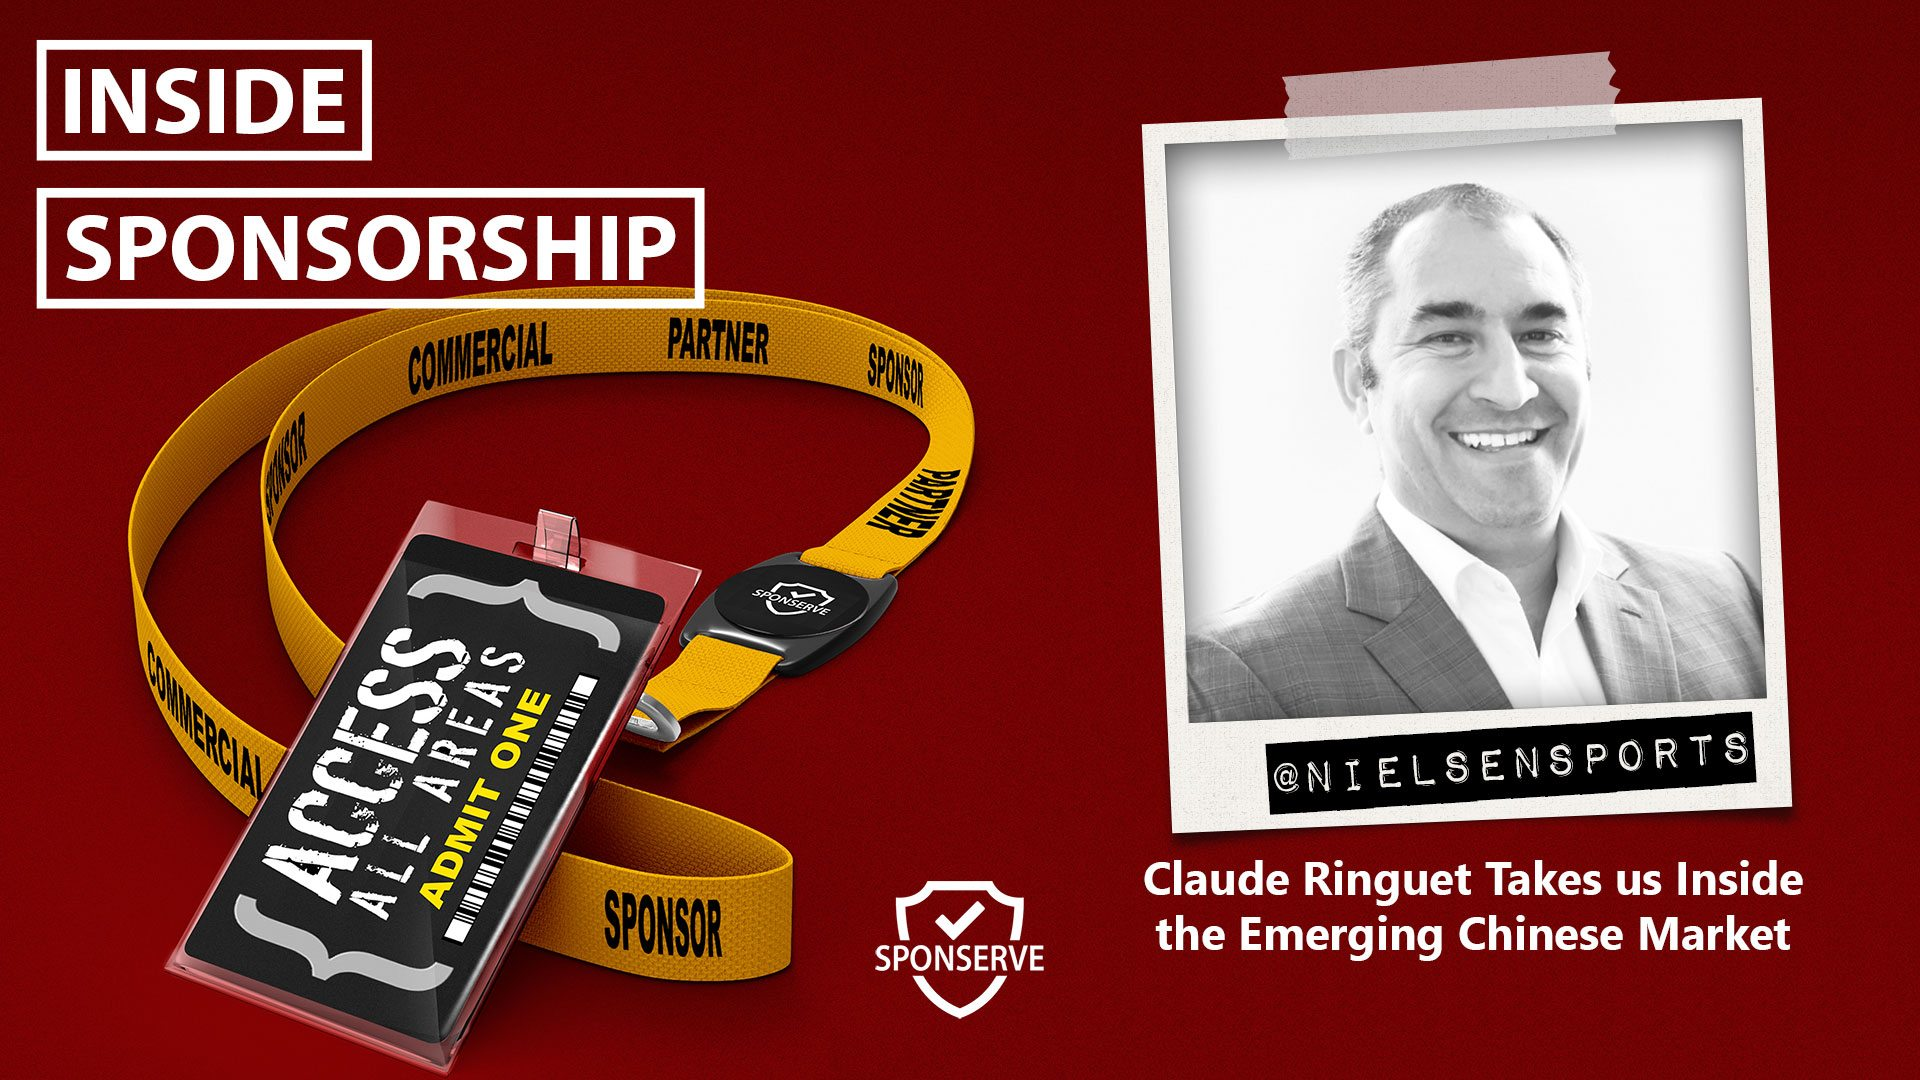 Inside Sponsorship - China - Claude Ringuet - Nielsen